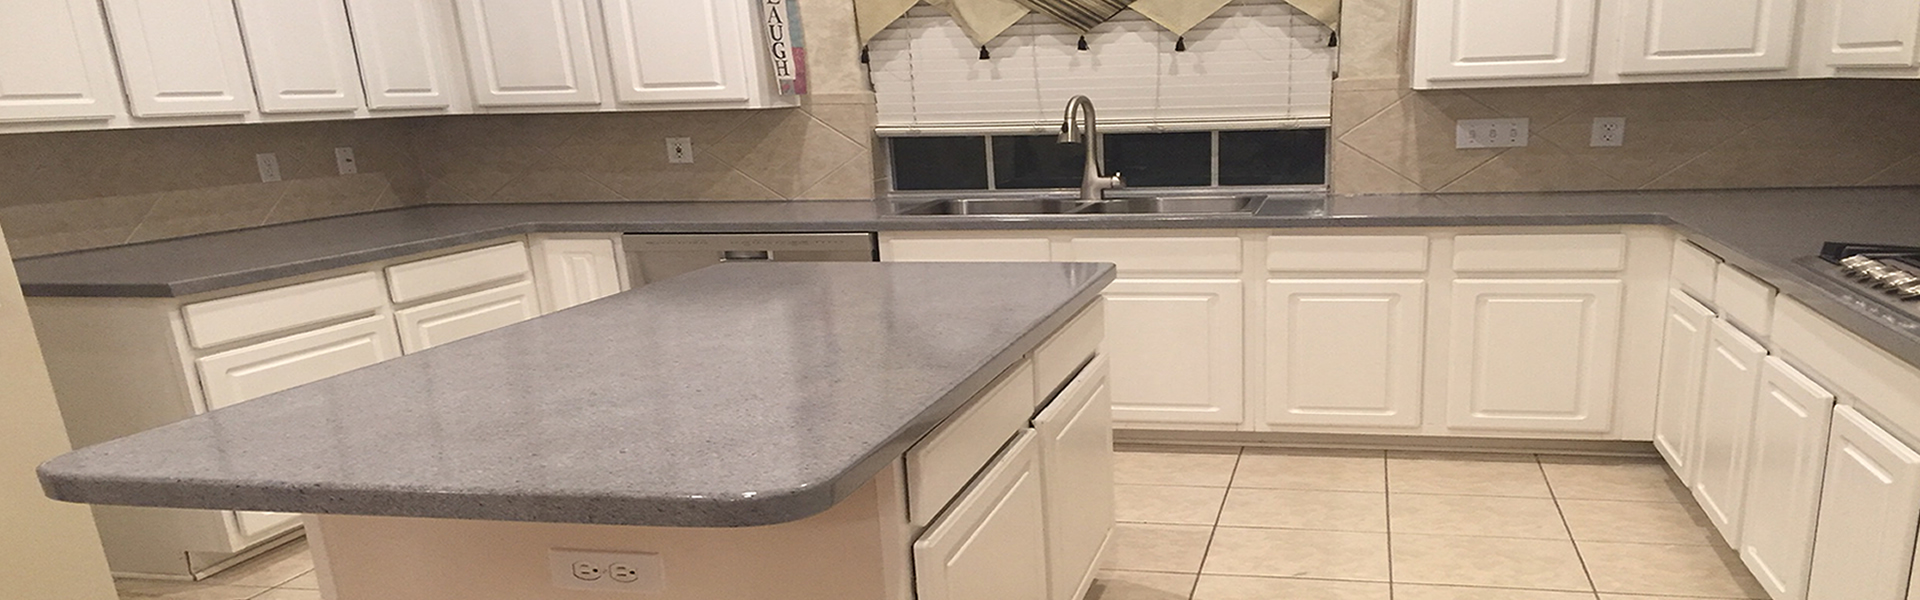 Great BATHTUB REFINISHING IN AUSTIN, TX, CULTURED AND LAMINATE FORMICA,  AFFORDABLE CABINETS AND COUNTERTOPS RESURFACING, Cabinets Refacing, Tile,  ...